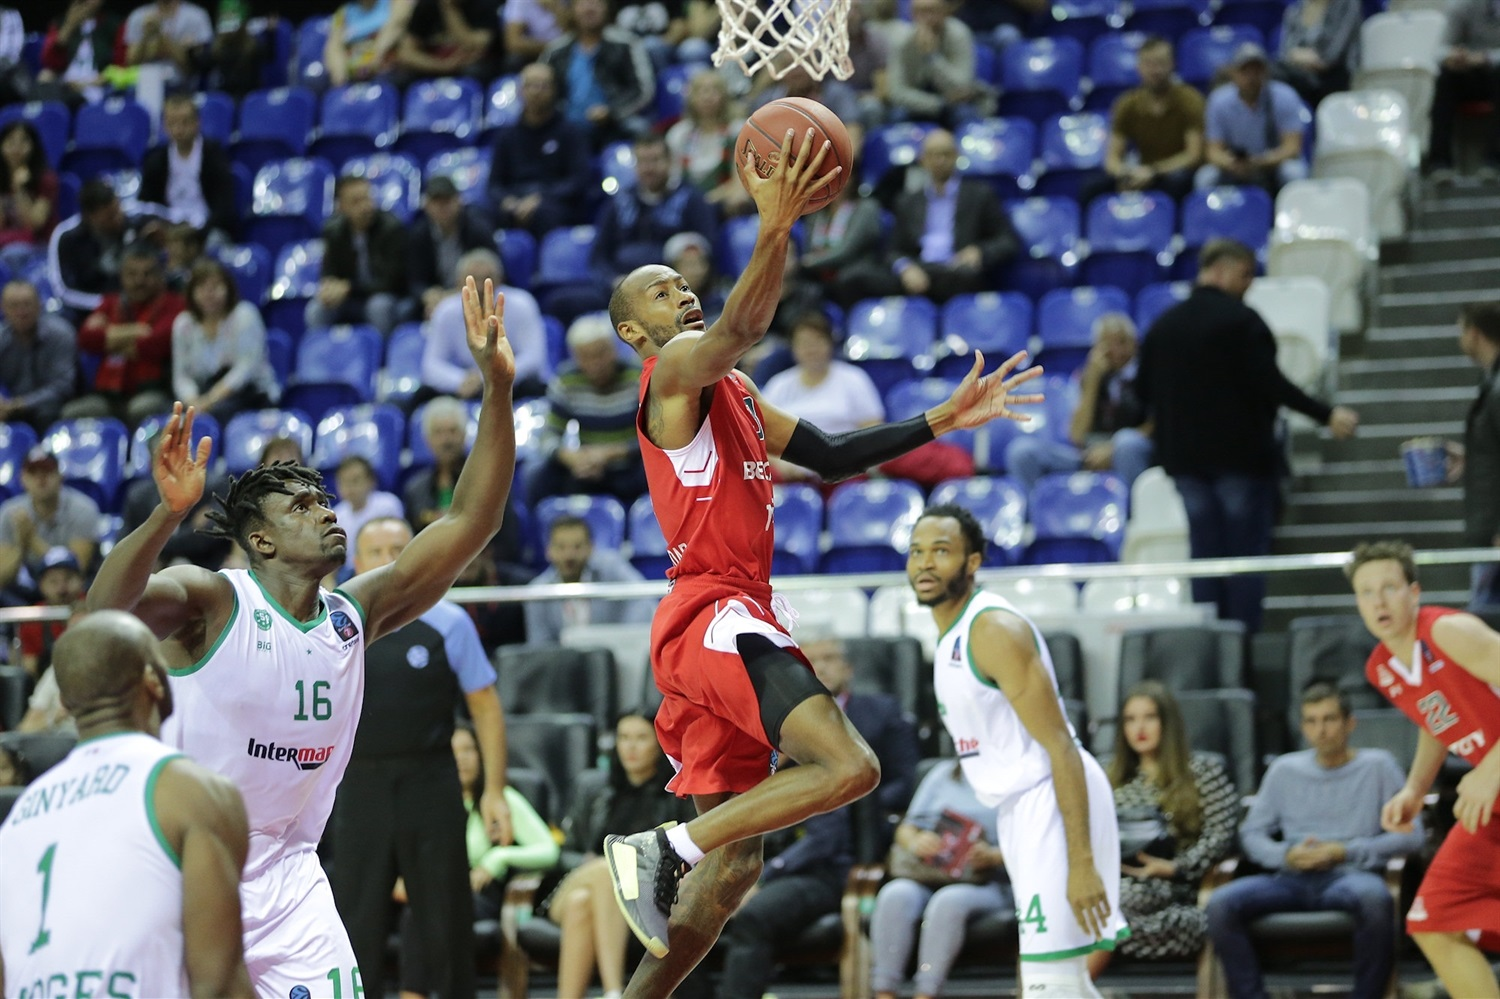 Will Cummings - Lokomotiv Kuban Krasnodar (photo Lokomotiv) - EC19